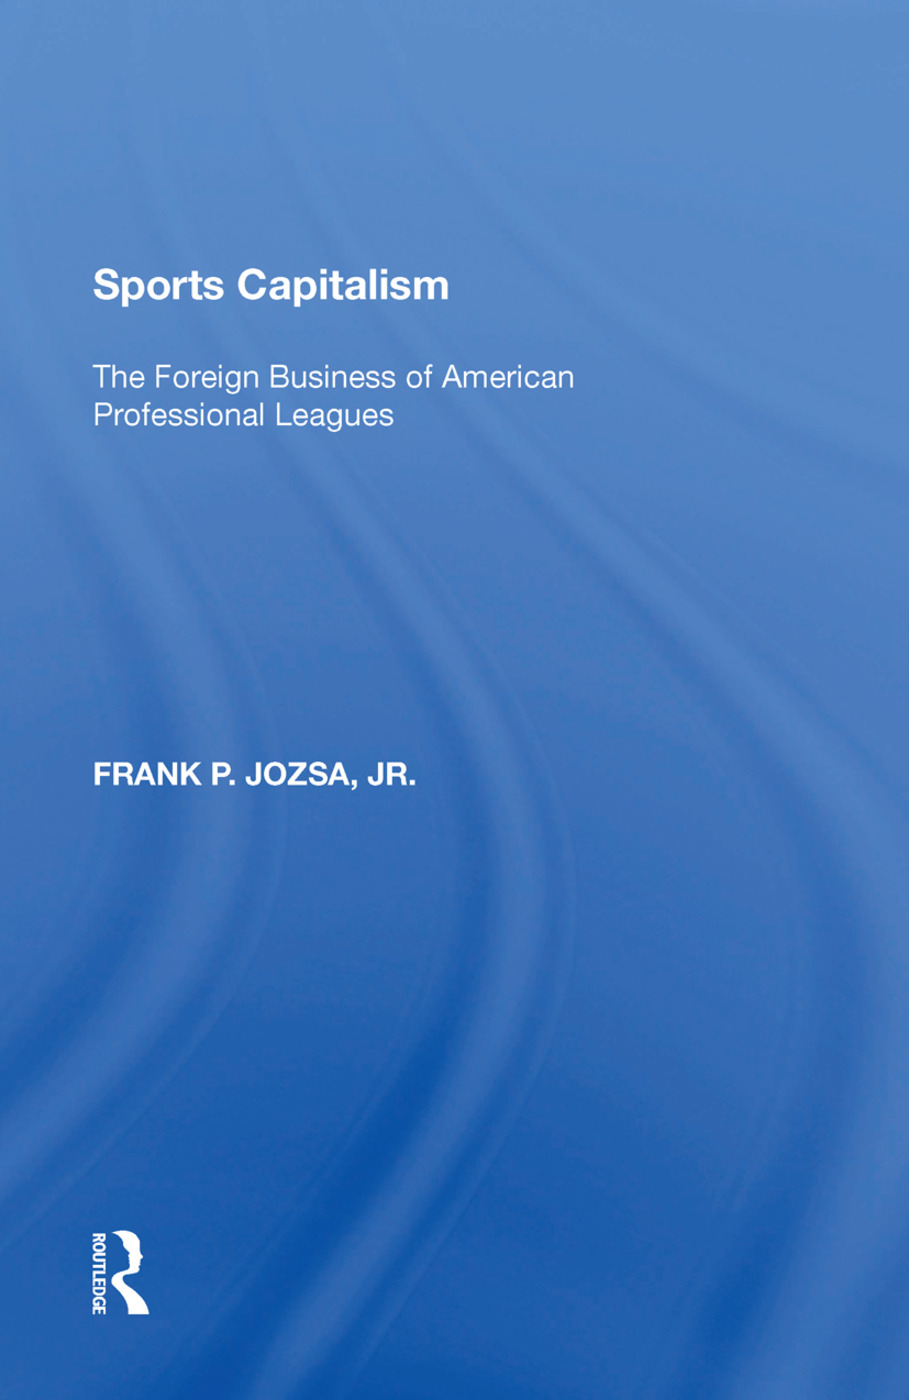 Sports Capitalism: The Foreign Business of American Professional Leagues book cover